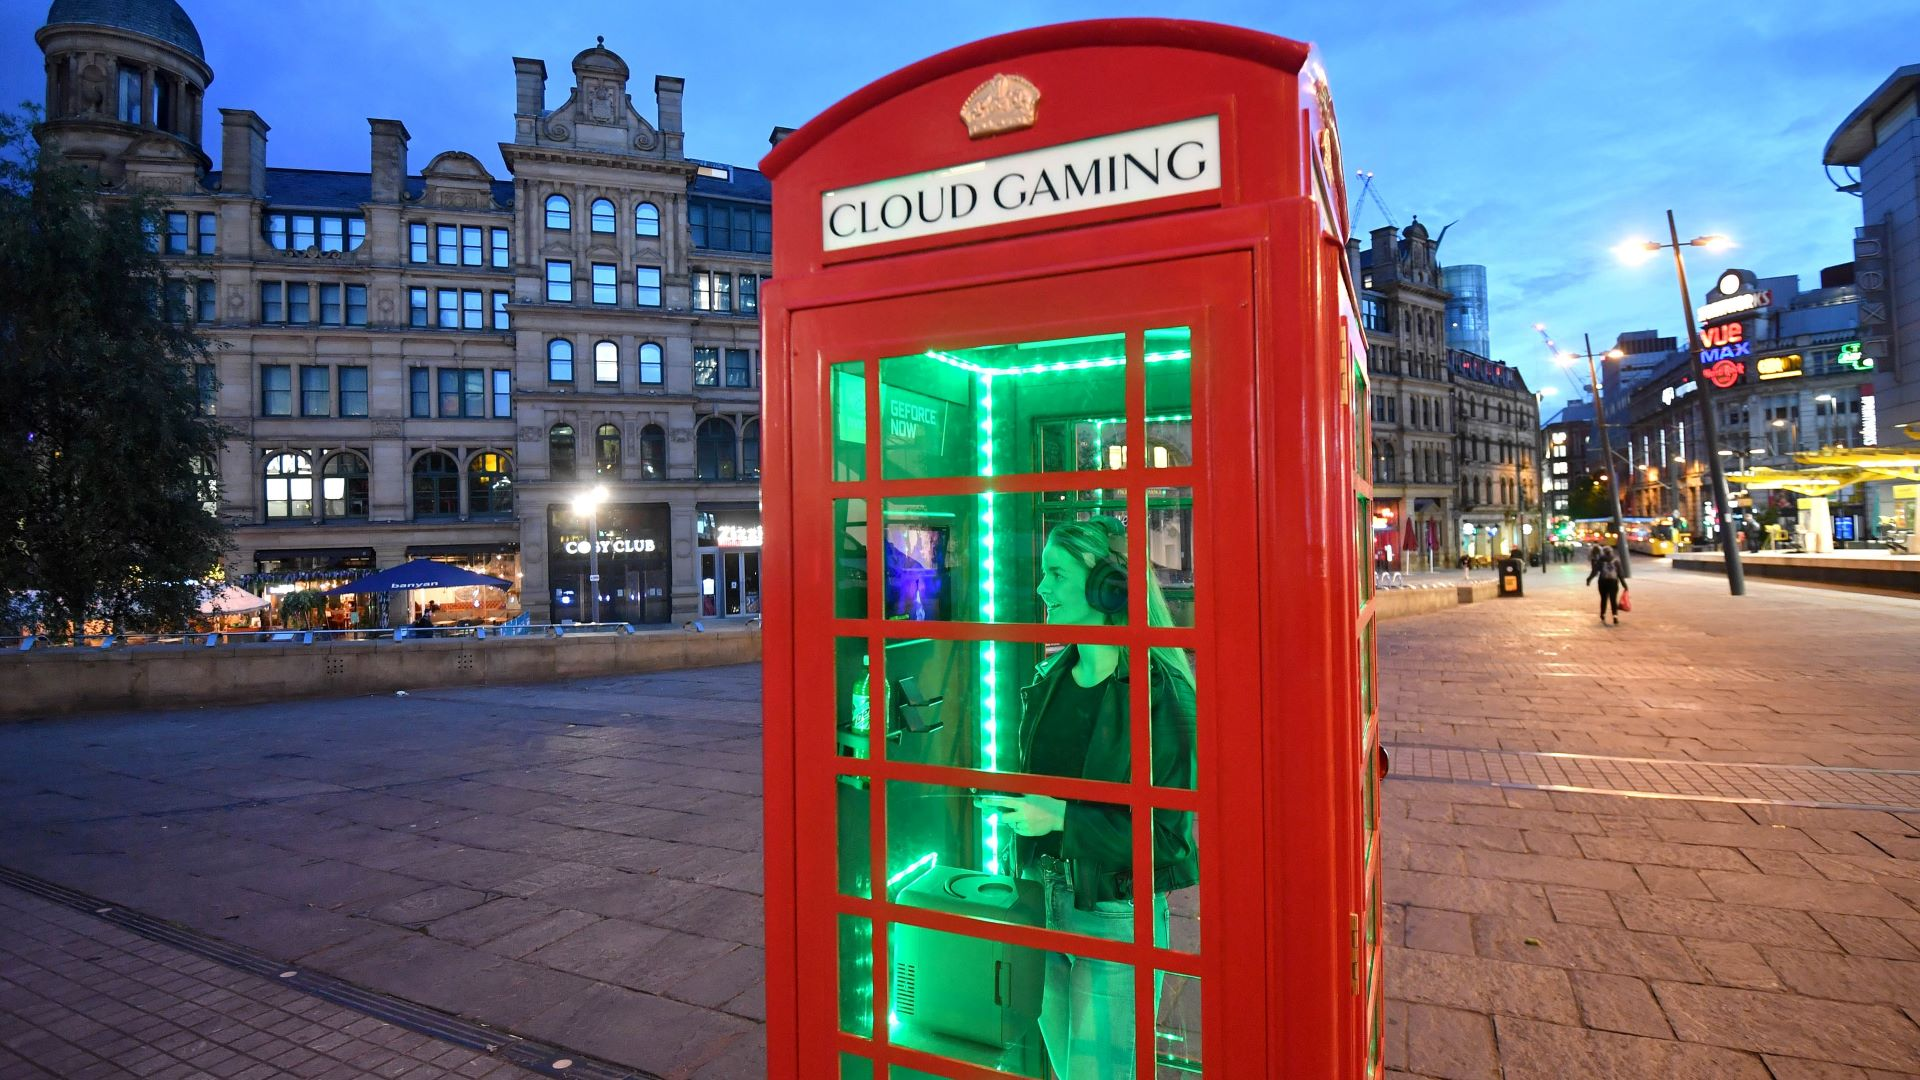 Nvidia just put an RTX 3080 in a retro phone box using GeForce Now